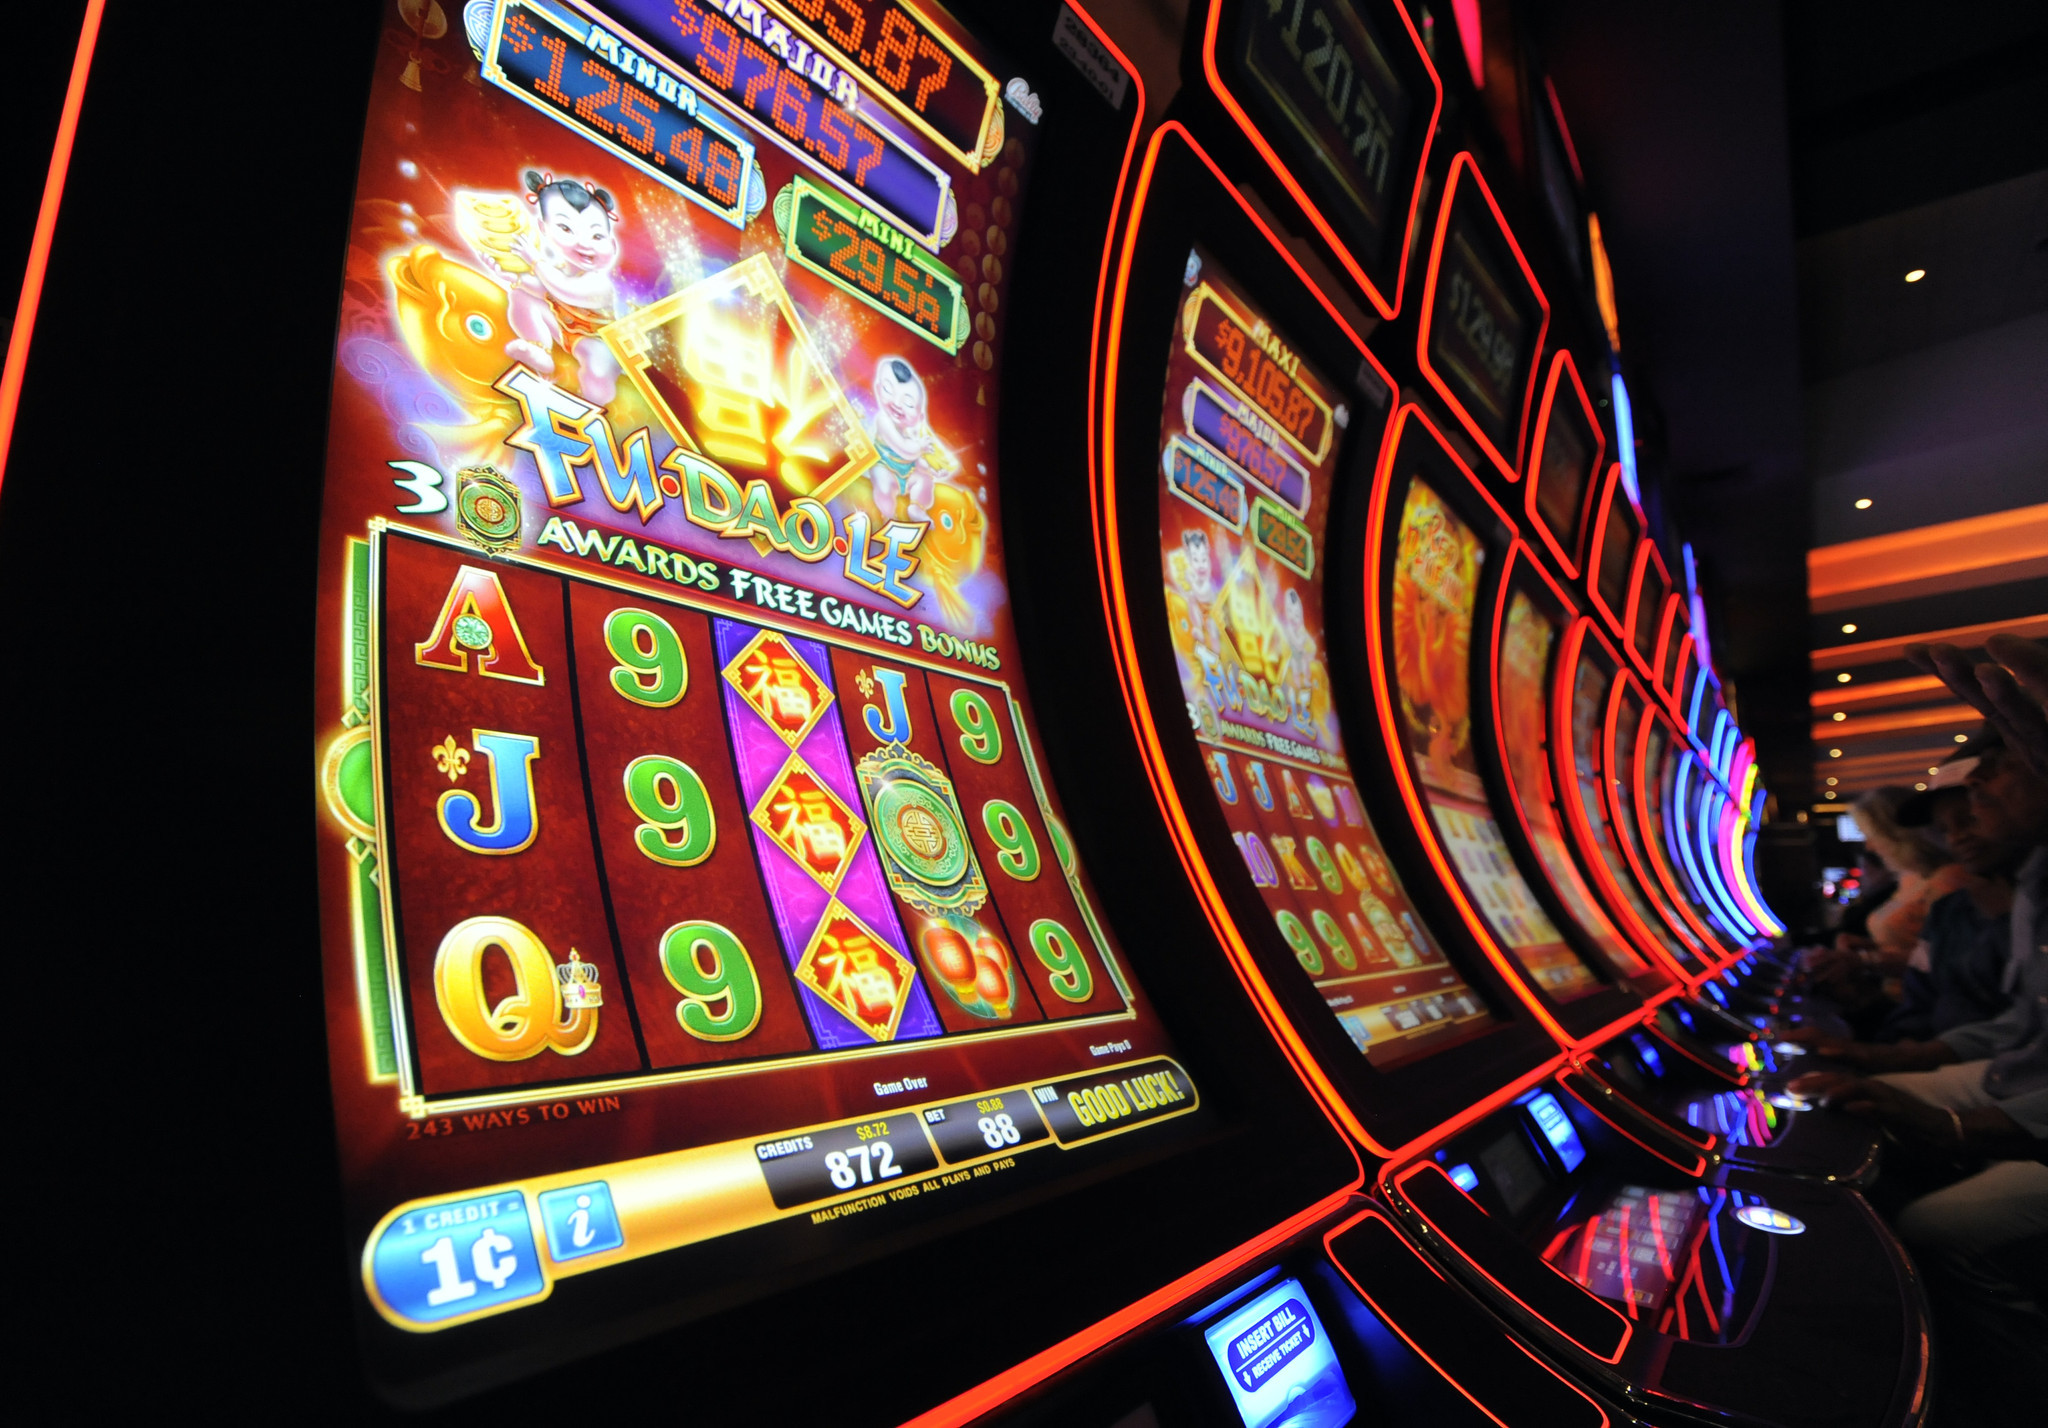 Casinos relax gaming bet casino Brasil - 970487